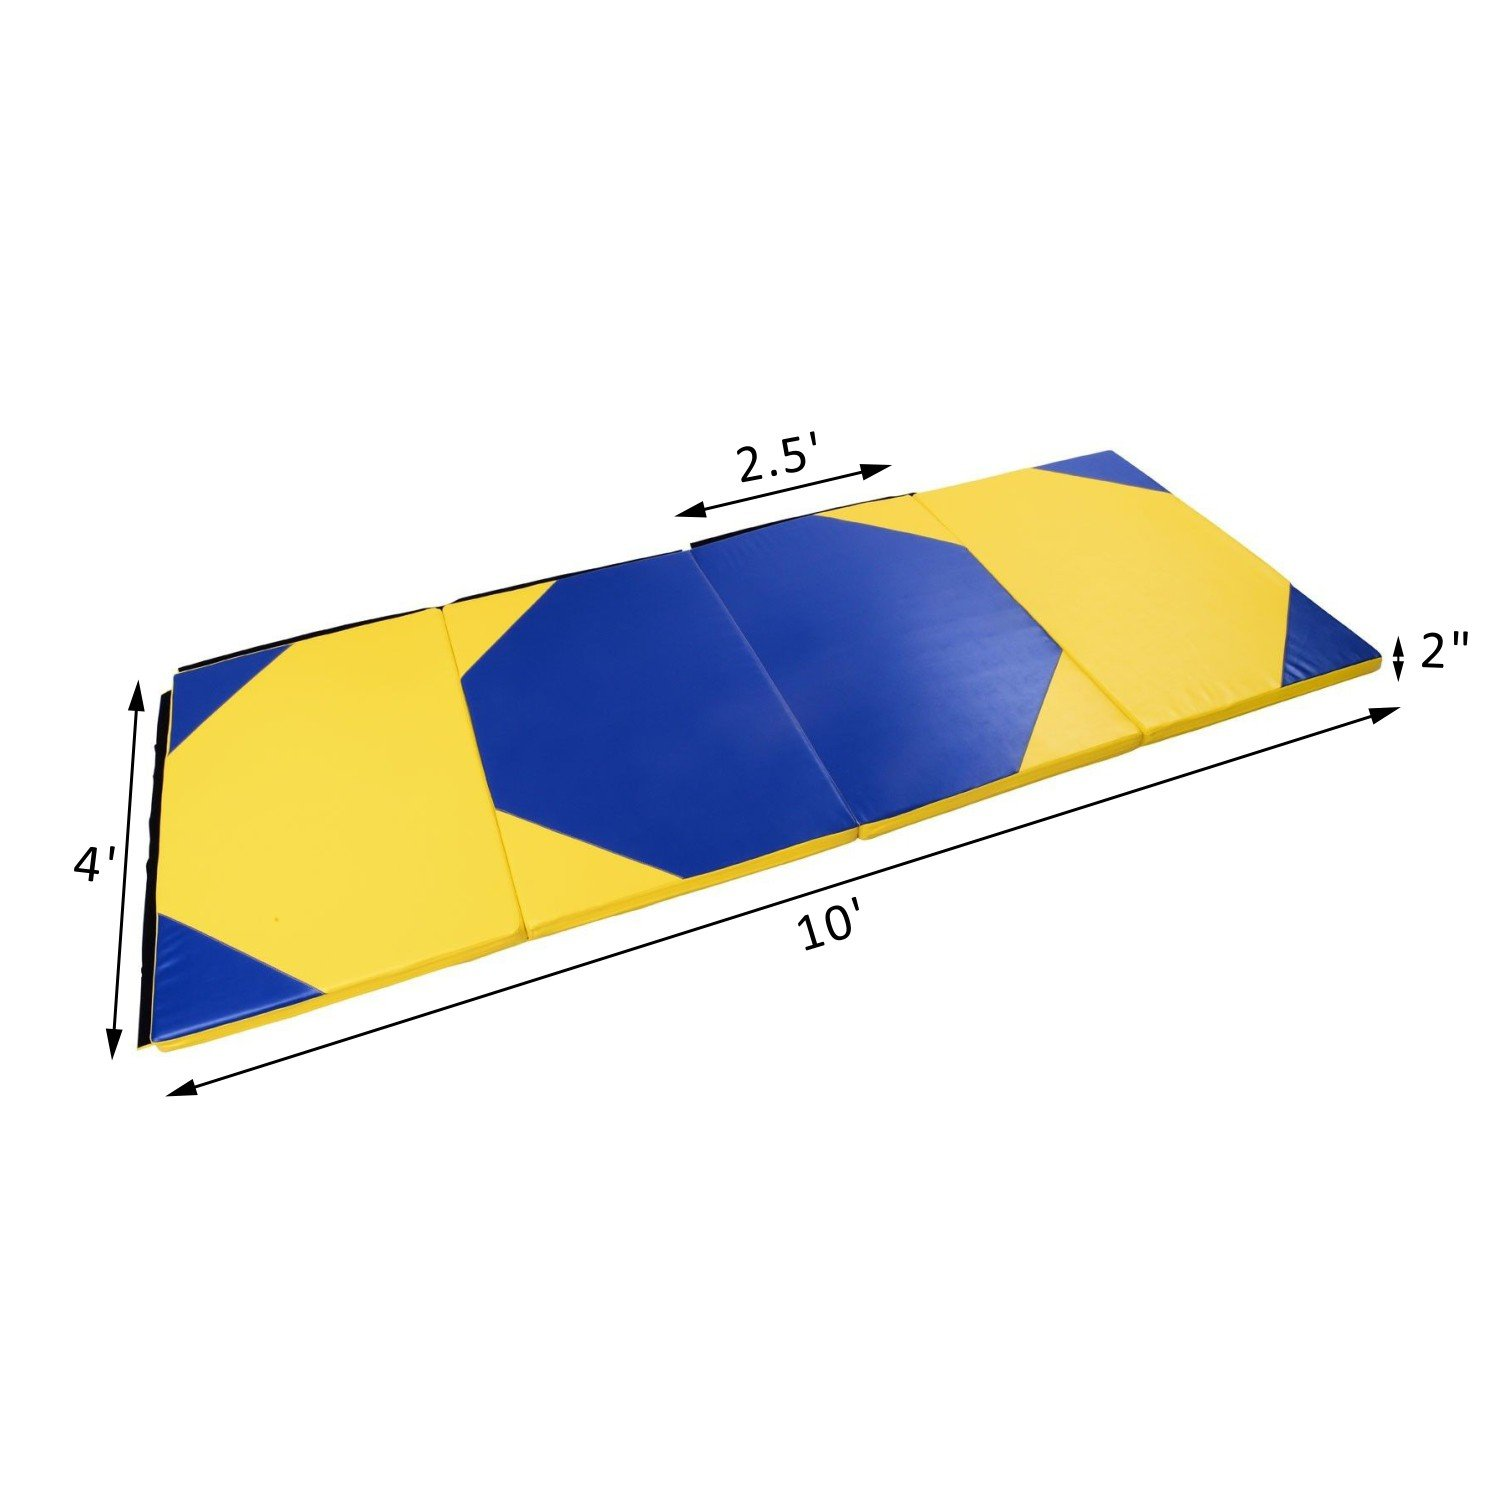 Fold Exercise Yoga Gymnastics Mat 4' x 10' x 2'' PU Soft Tumble Play With Ebook by MRT SUPPLY